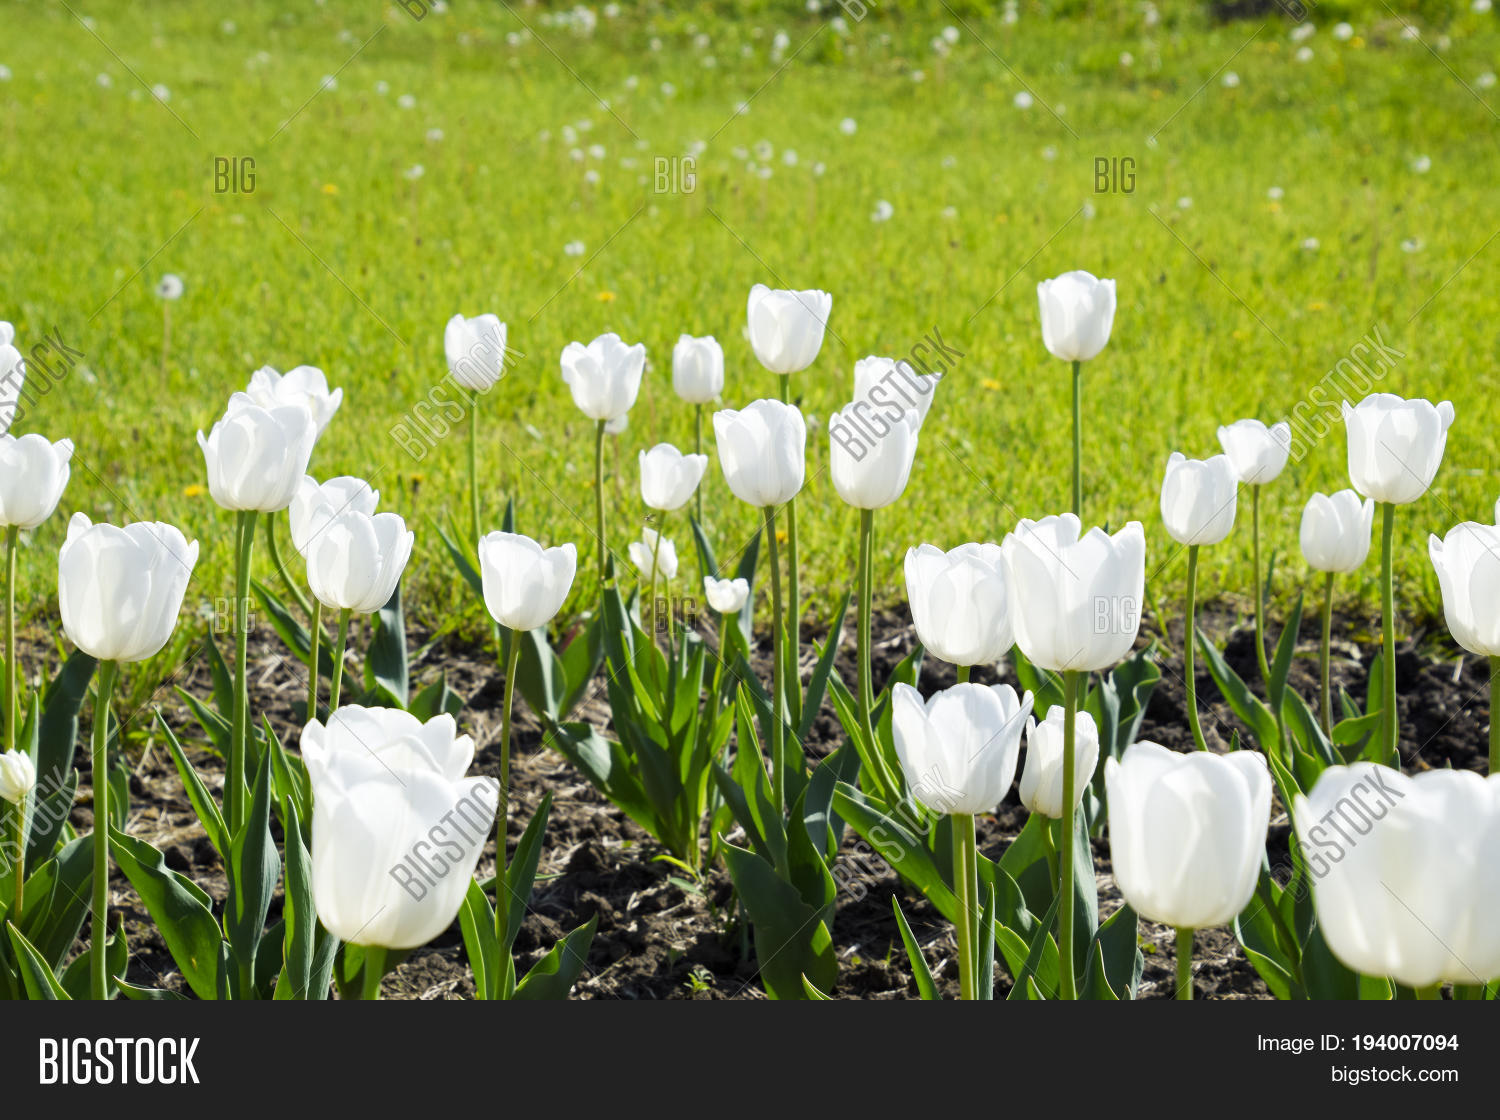 Flower Bed White Image Photo Free Trial Bigstock